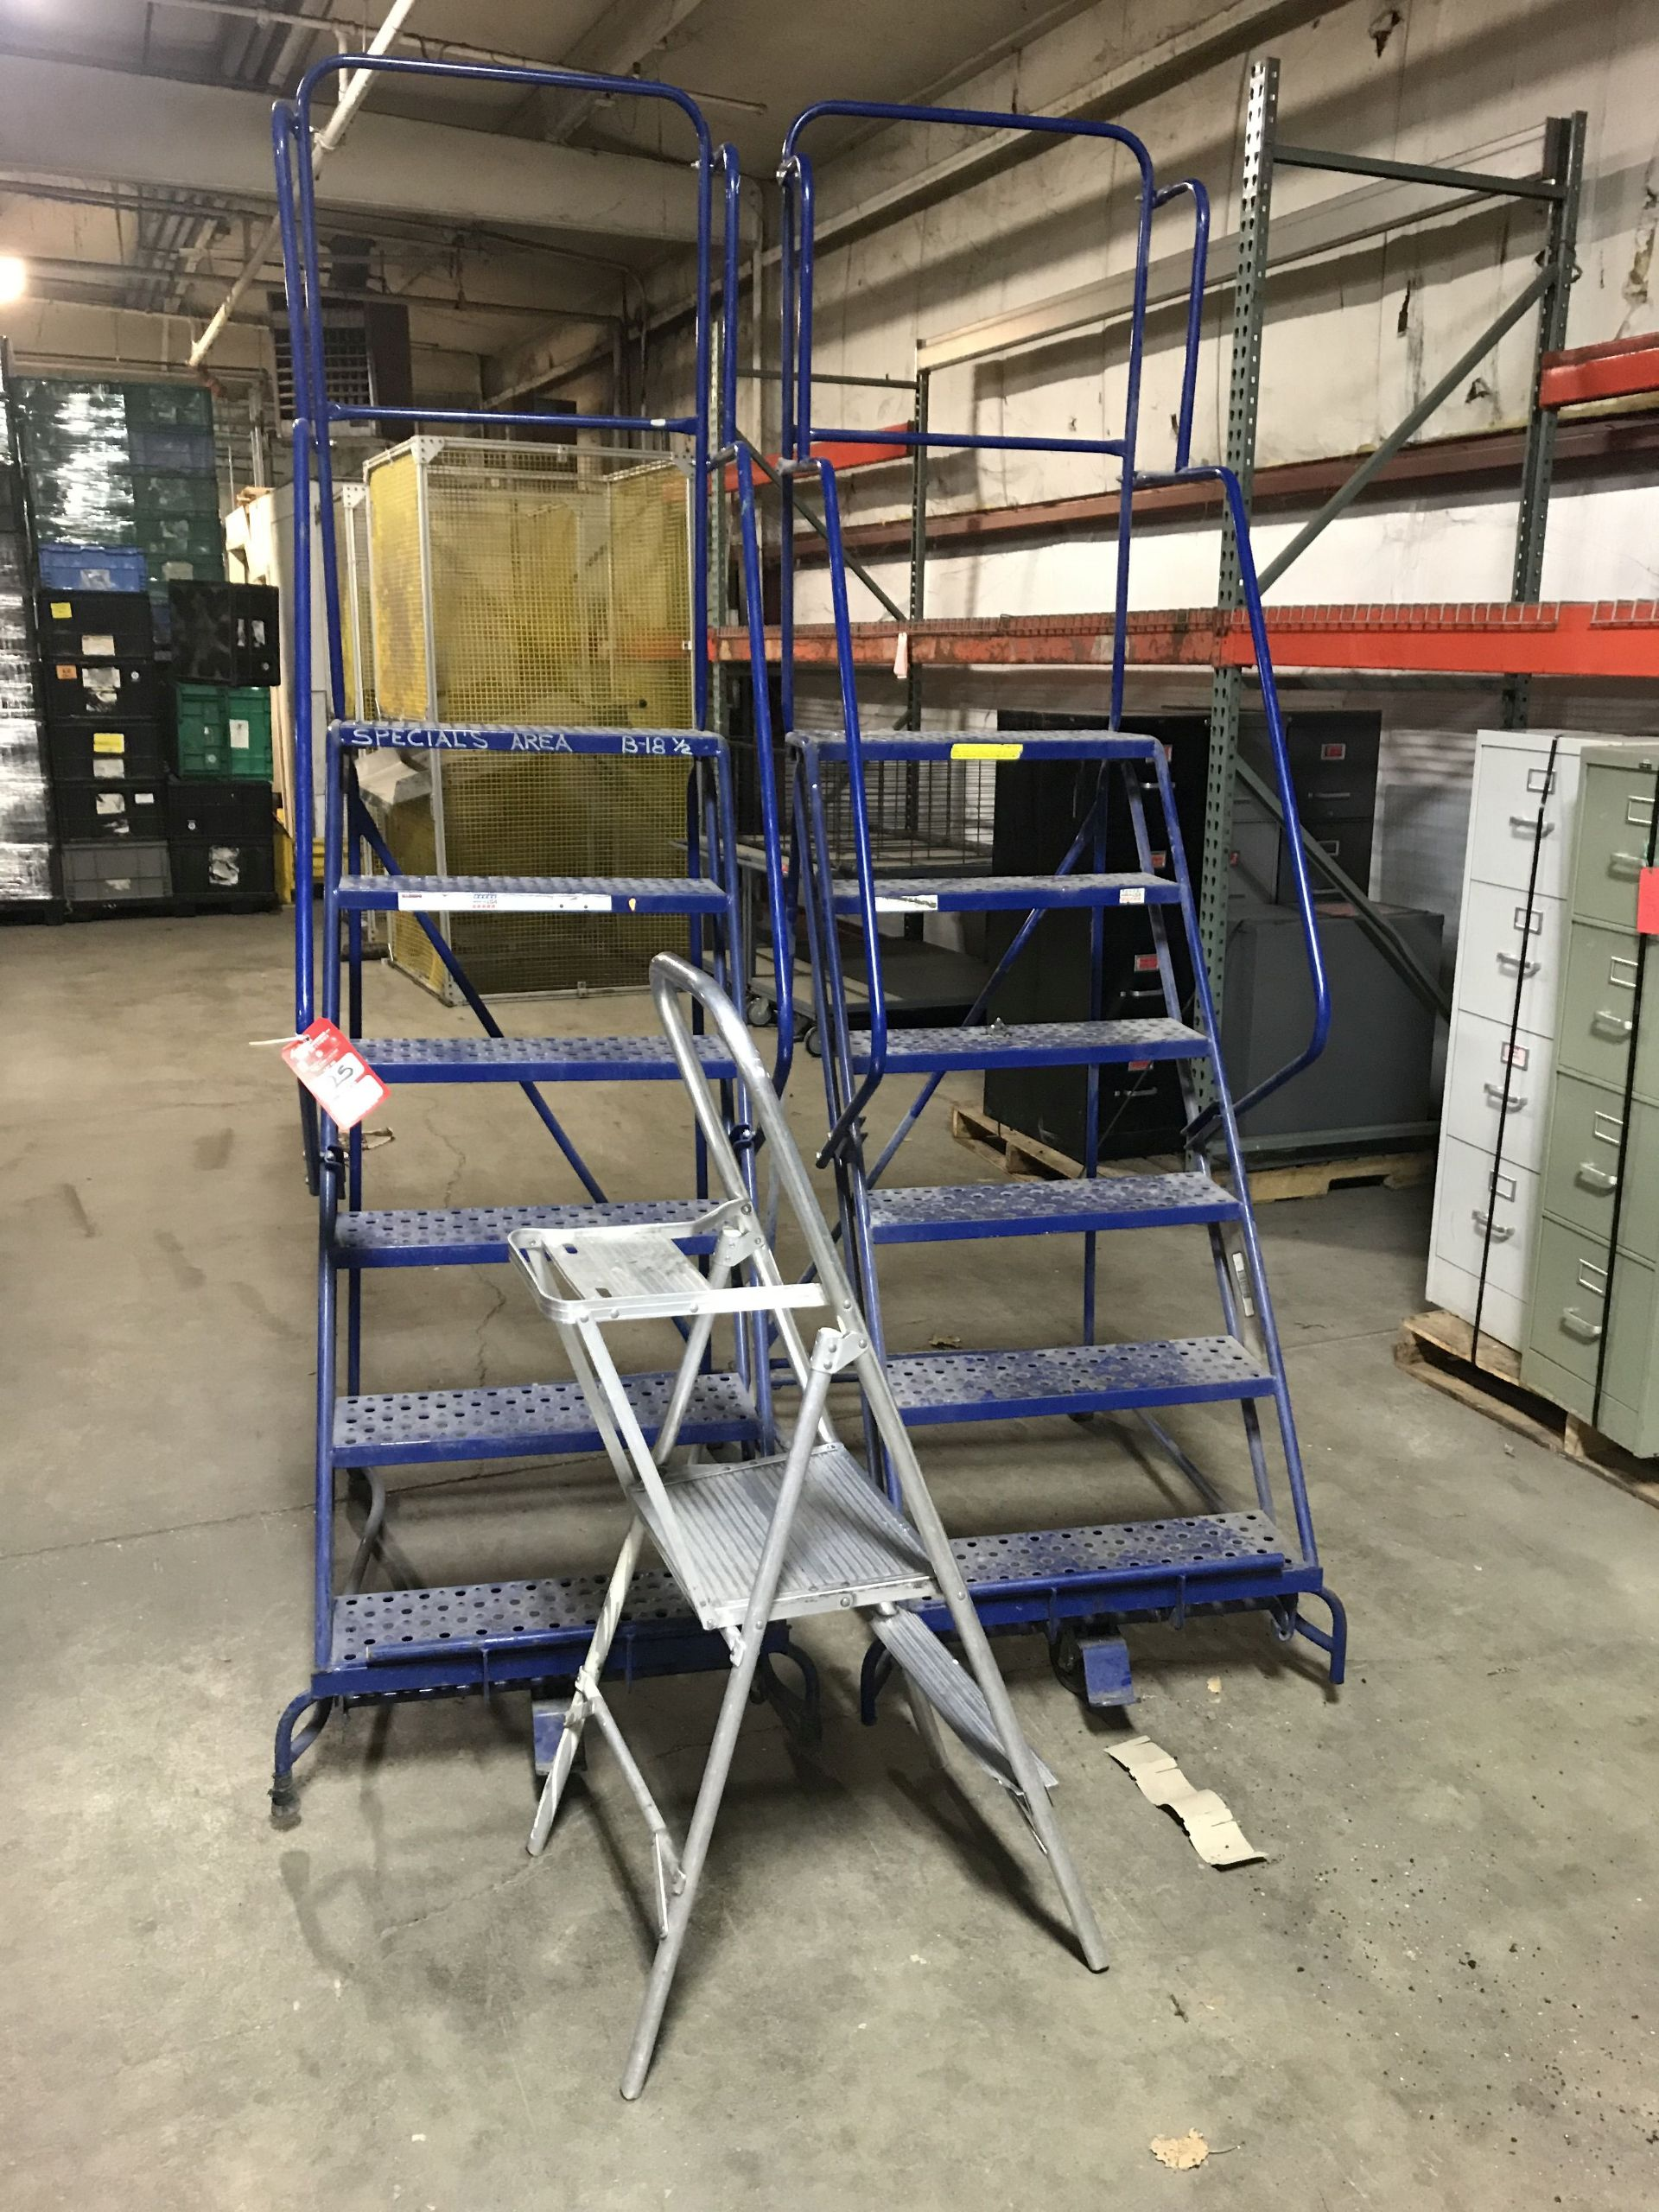 Lot 25 - ROLLING 6' STEP LADDERS (2), AND ALUMINUM 2' STEP STOOL [LOCATION: BUILDING 2]